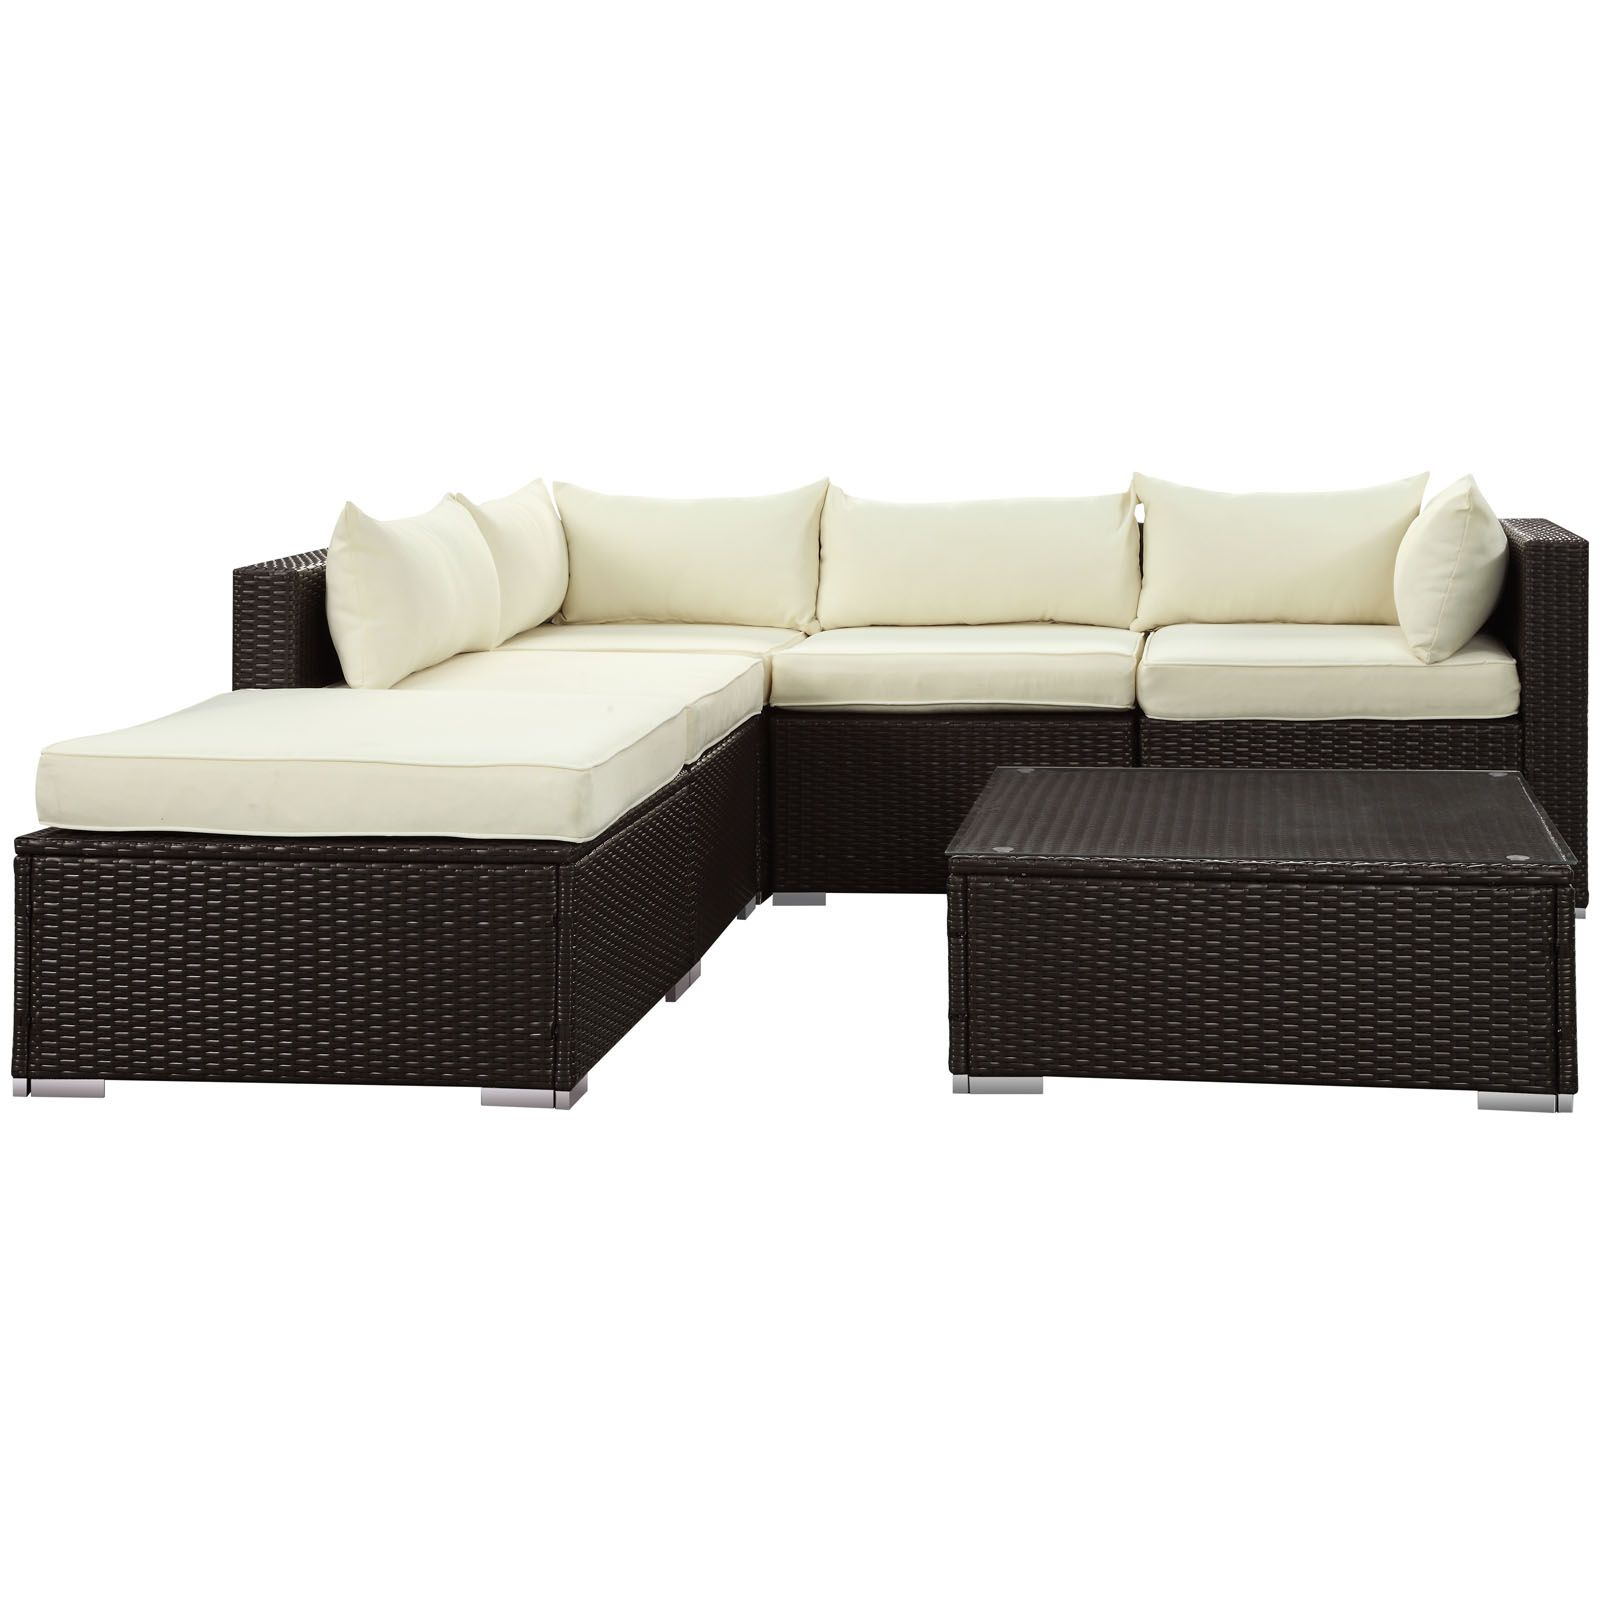 Hampton 6 Piece Sectional Set EEI-975-EXP-WHI-SET by LexMod